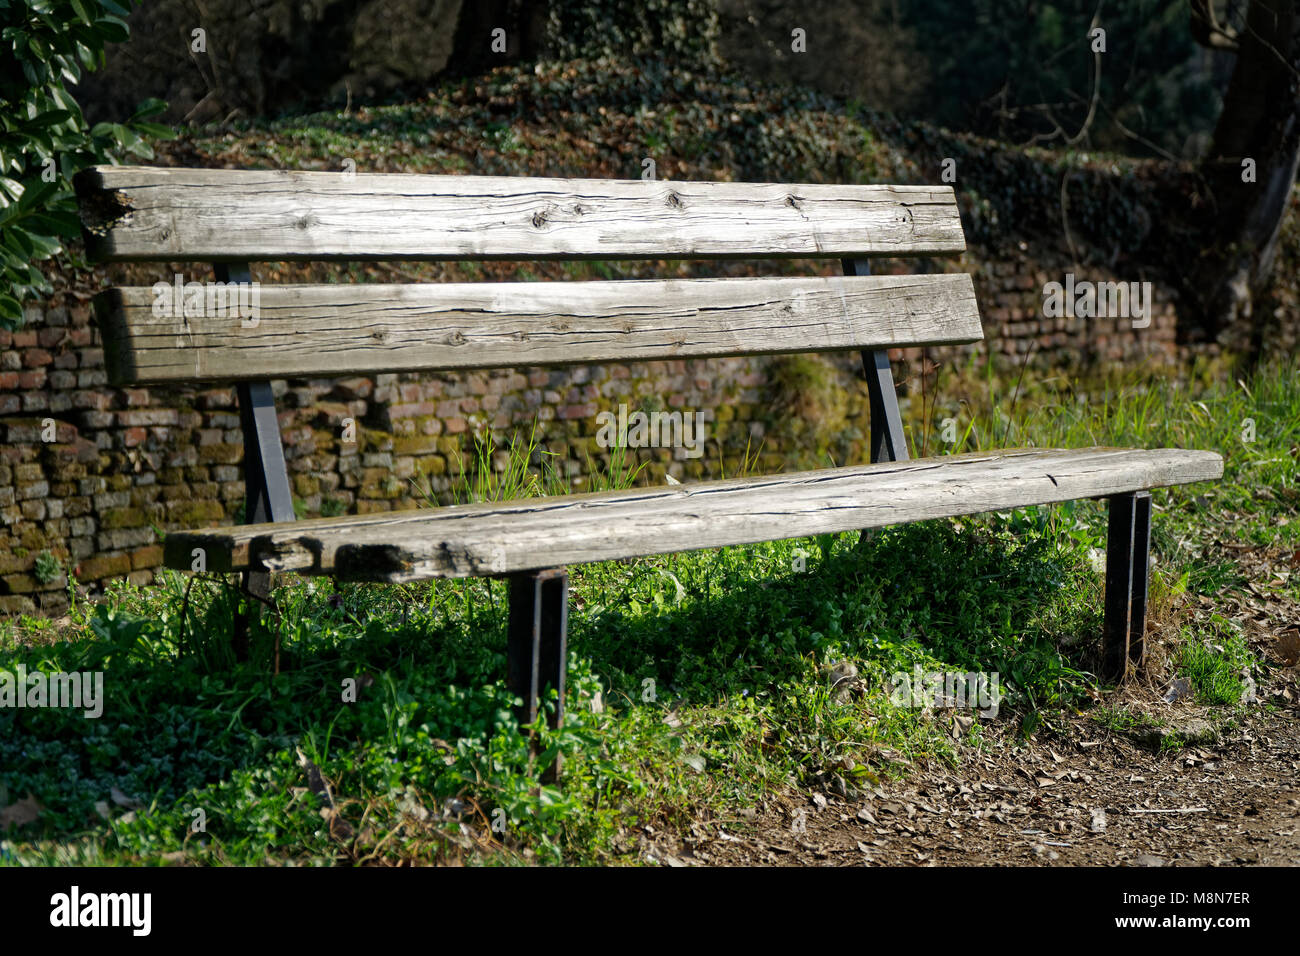 One wooden bench on sunny day in Italy, public parkland. Stock Photo